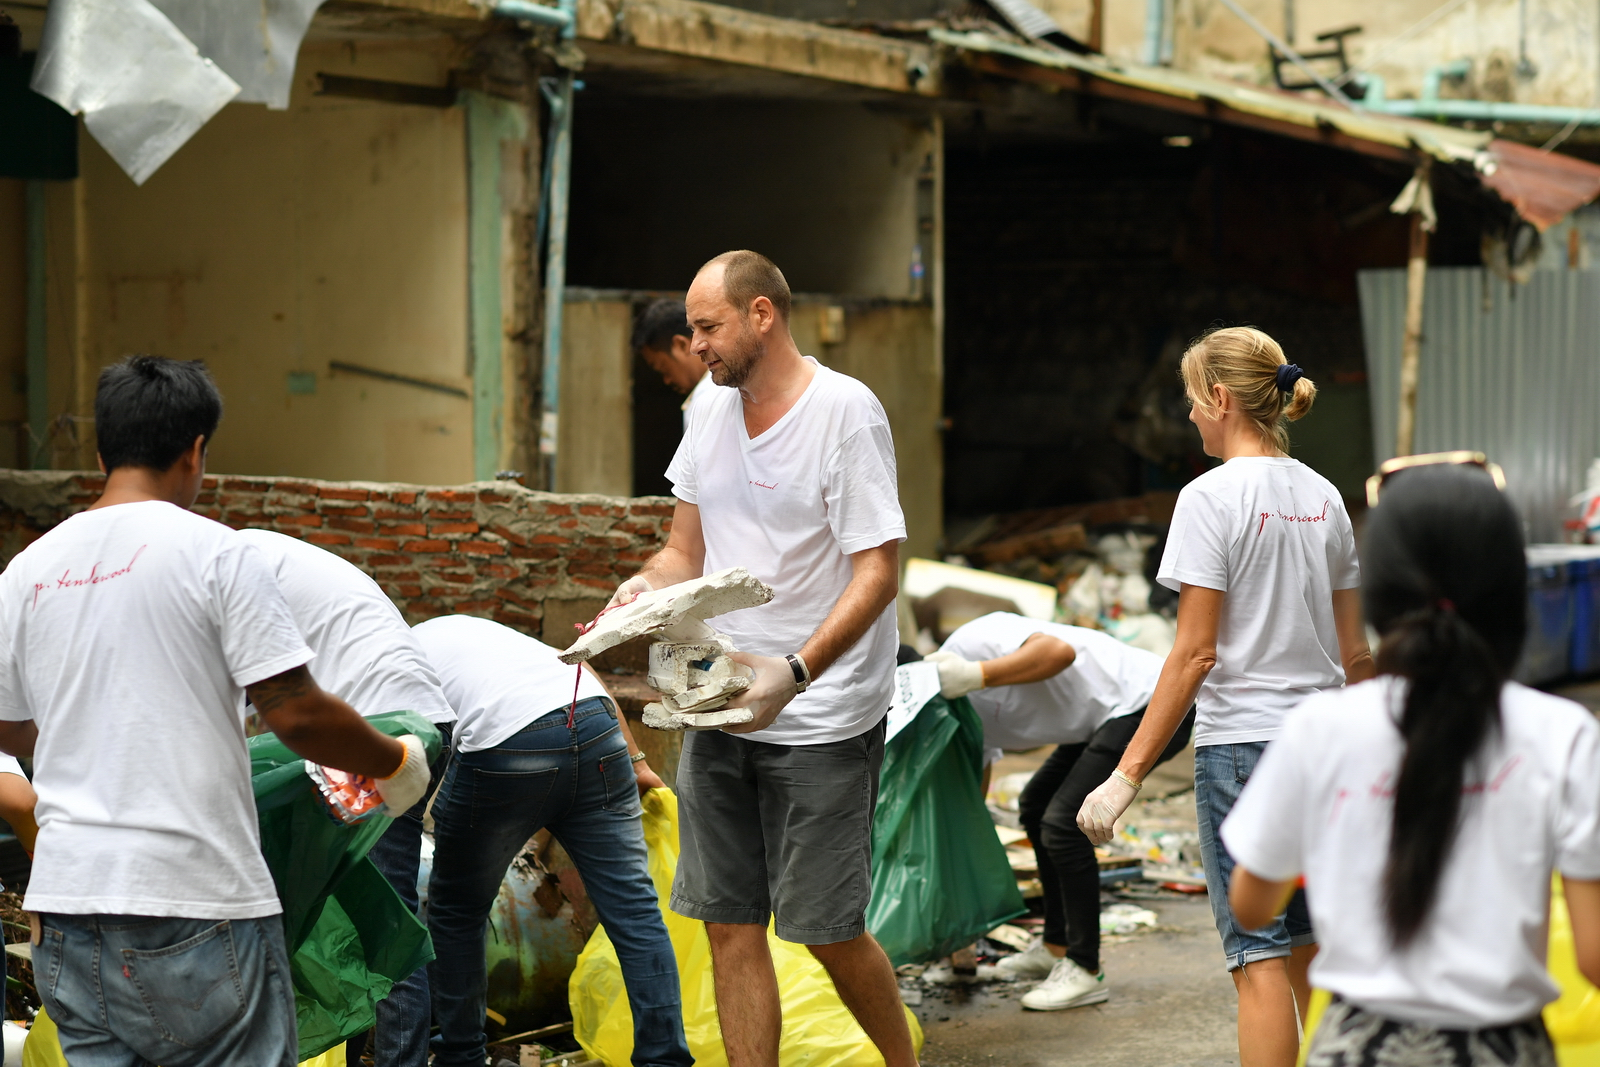 PTendercool-Event-Clean Up The World-190921-101